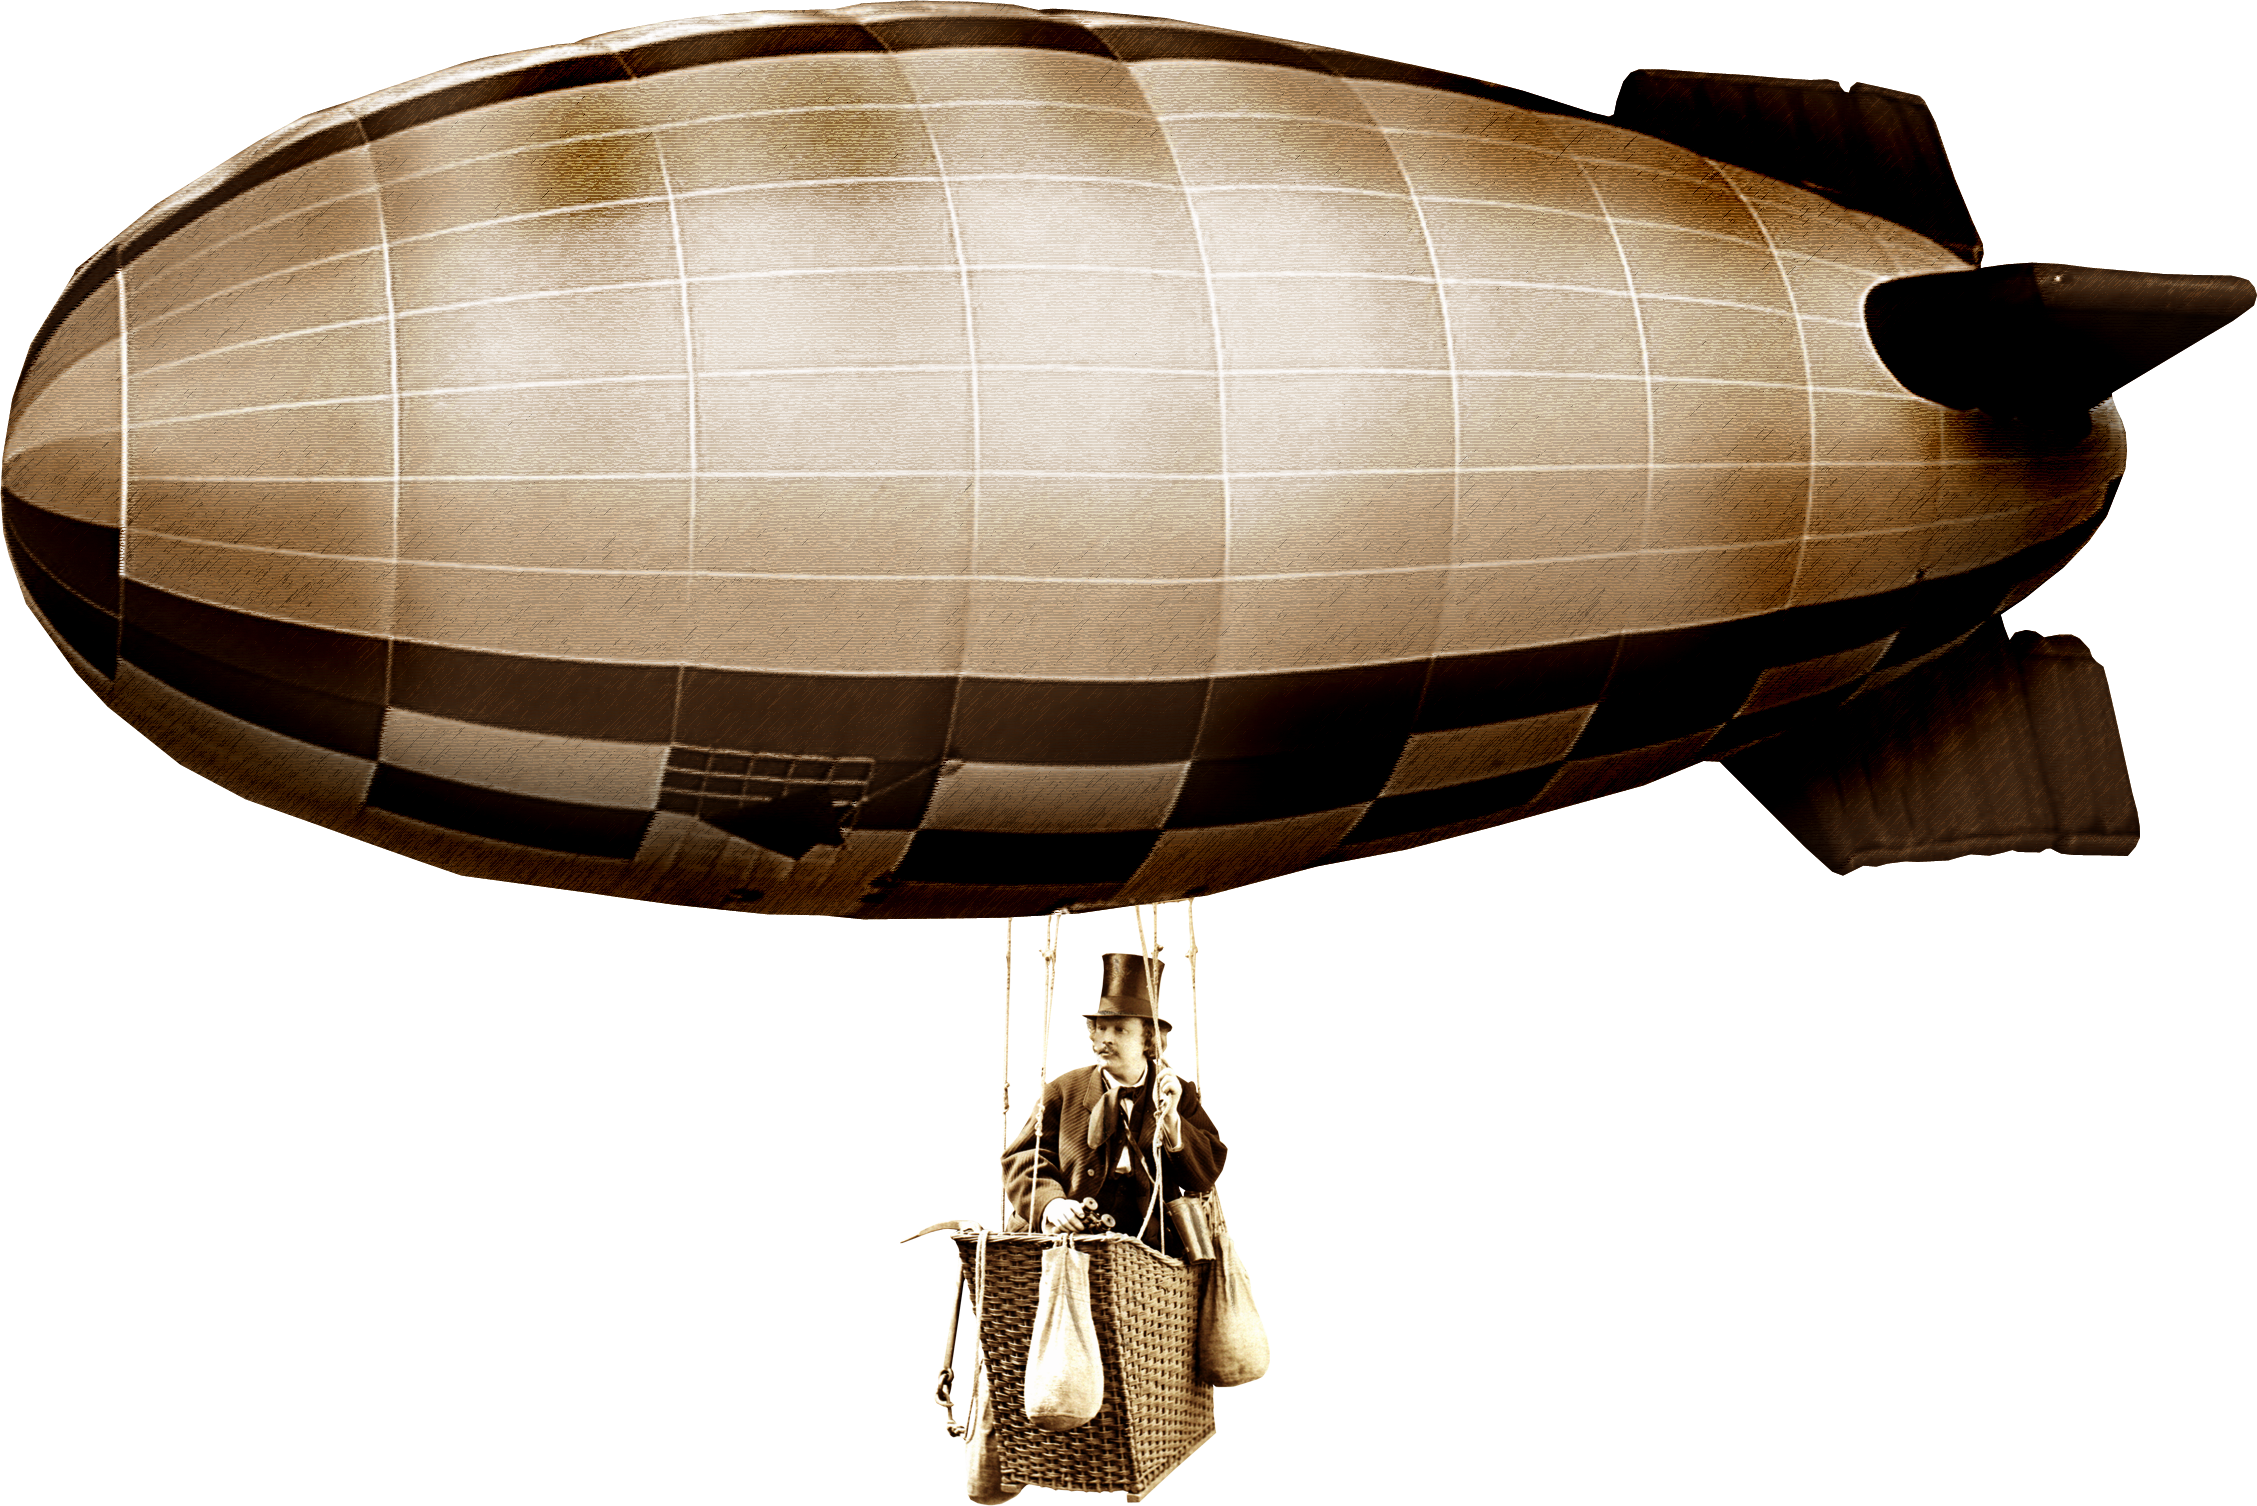 Airship PNG Images Transparent Free Download.